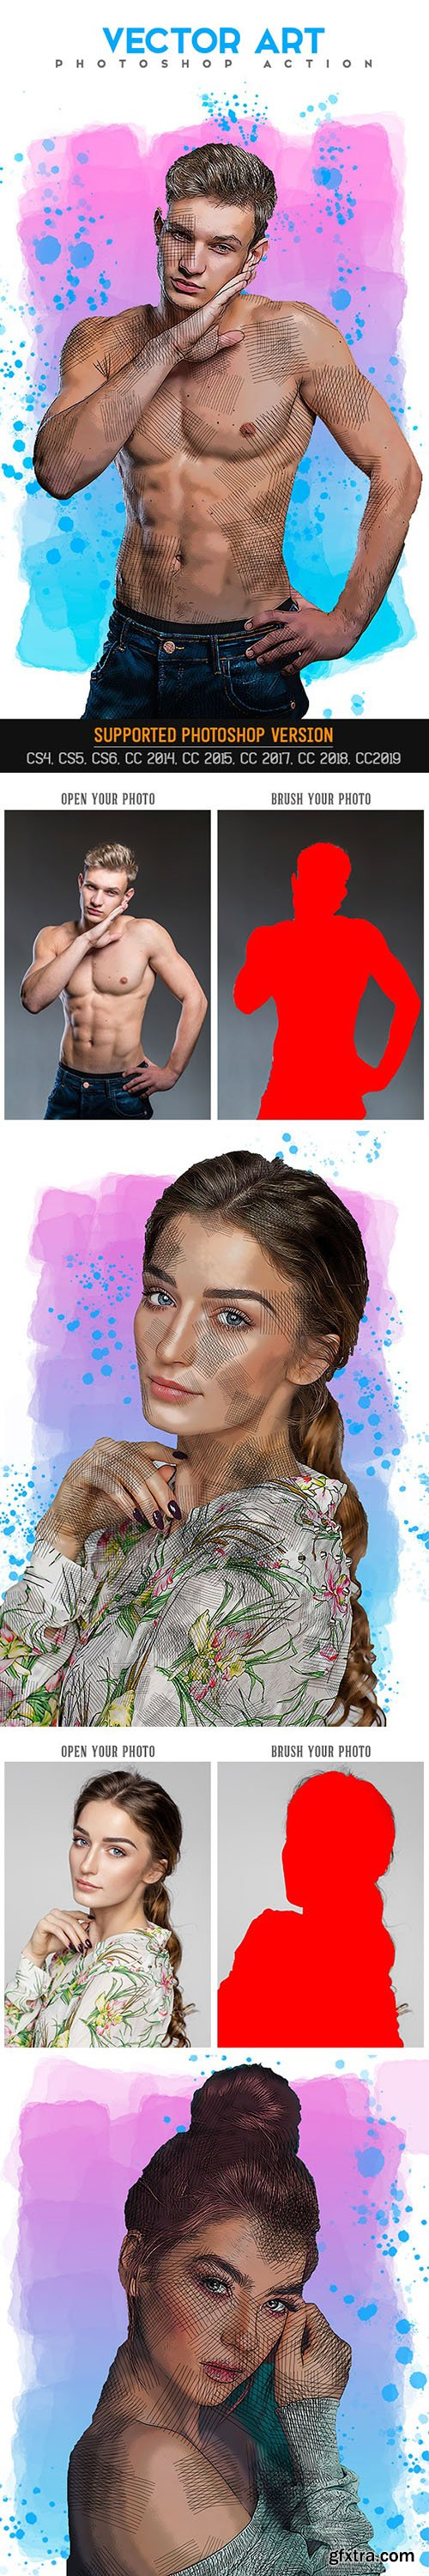 Graphicriver - Vector Art Photoshop Action 25659008